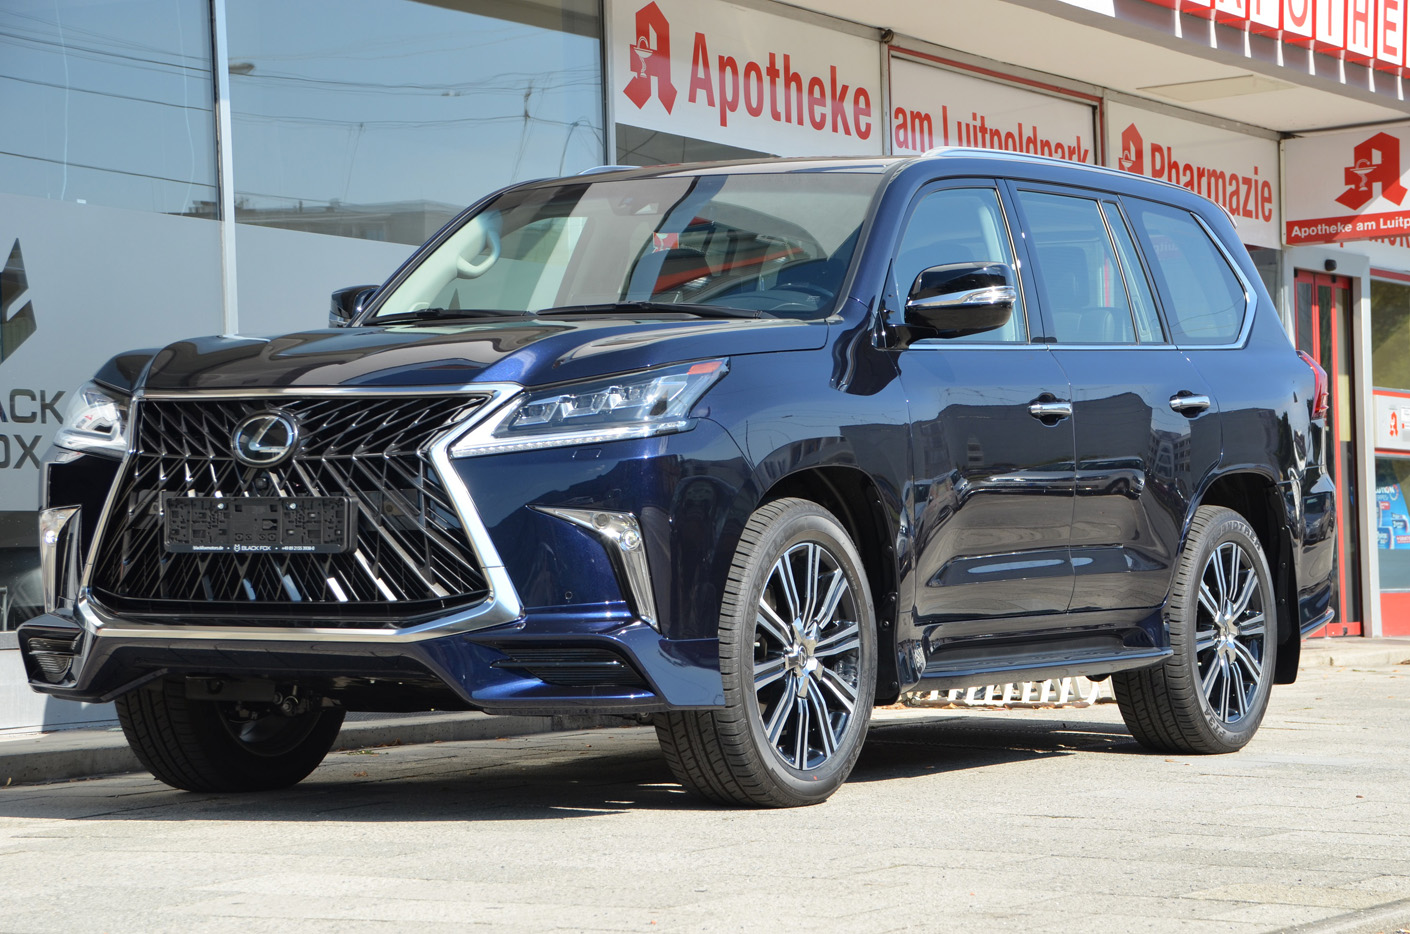 Lexus LX 570 2019 F-SPORT FULL OPTIONED EU NAVI EU REG ...